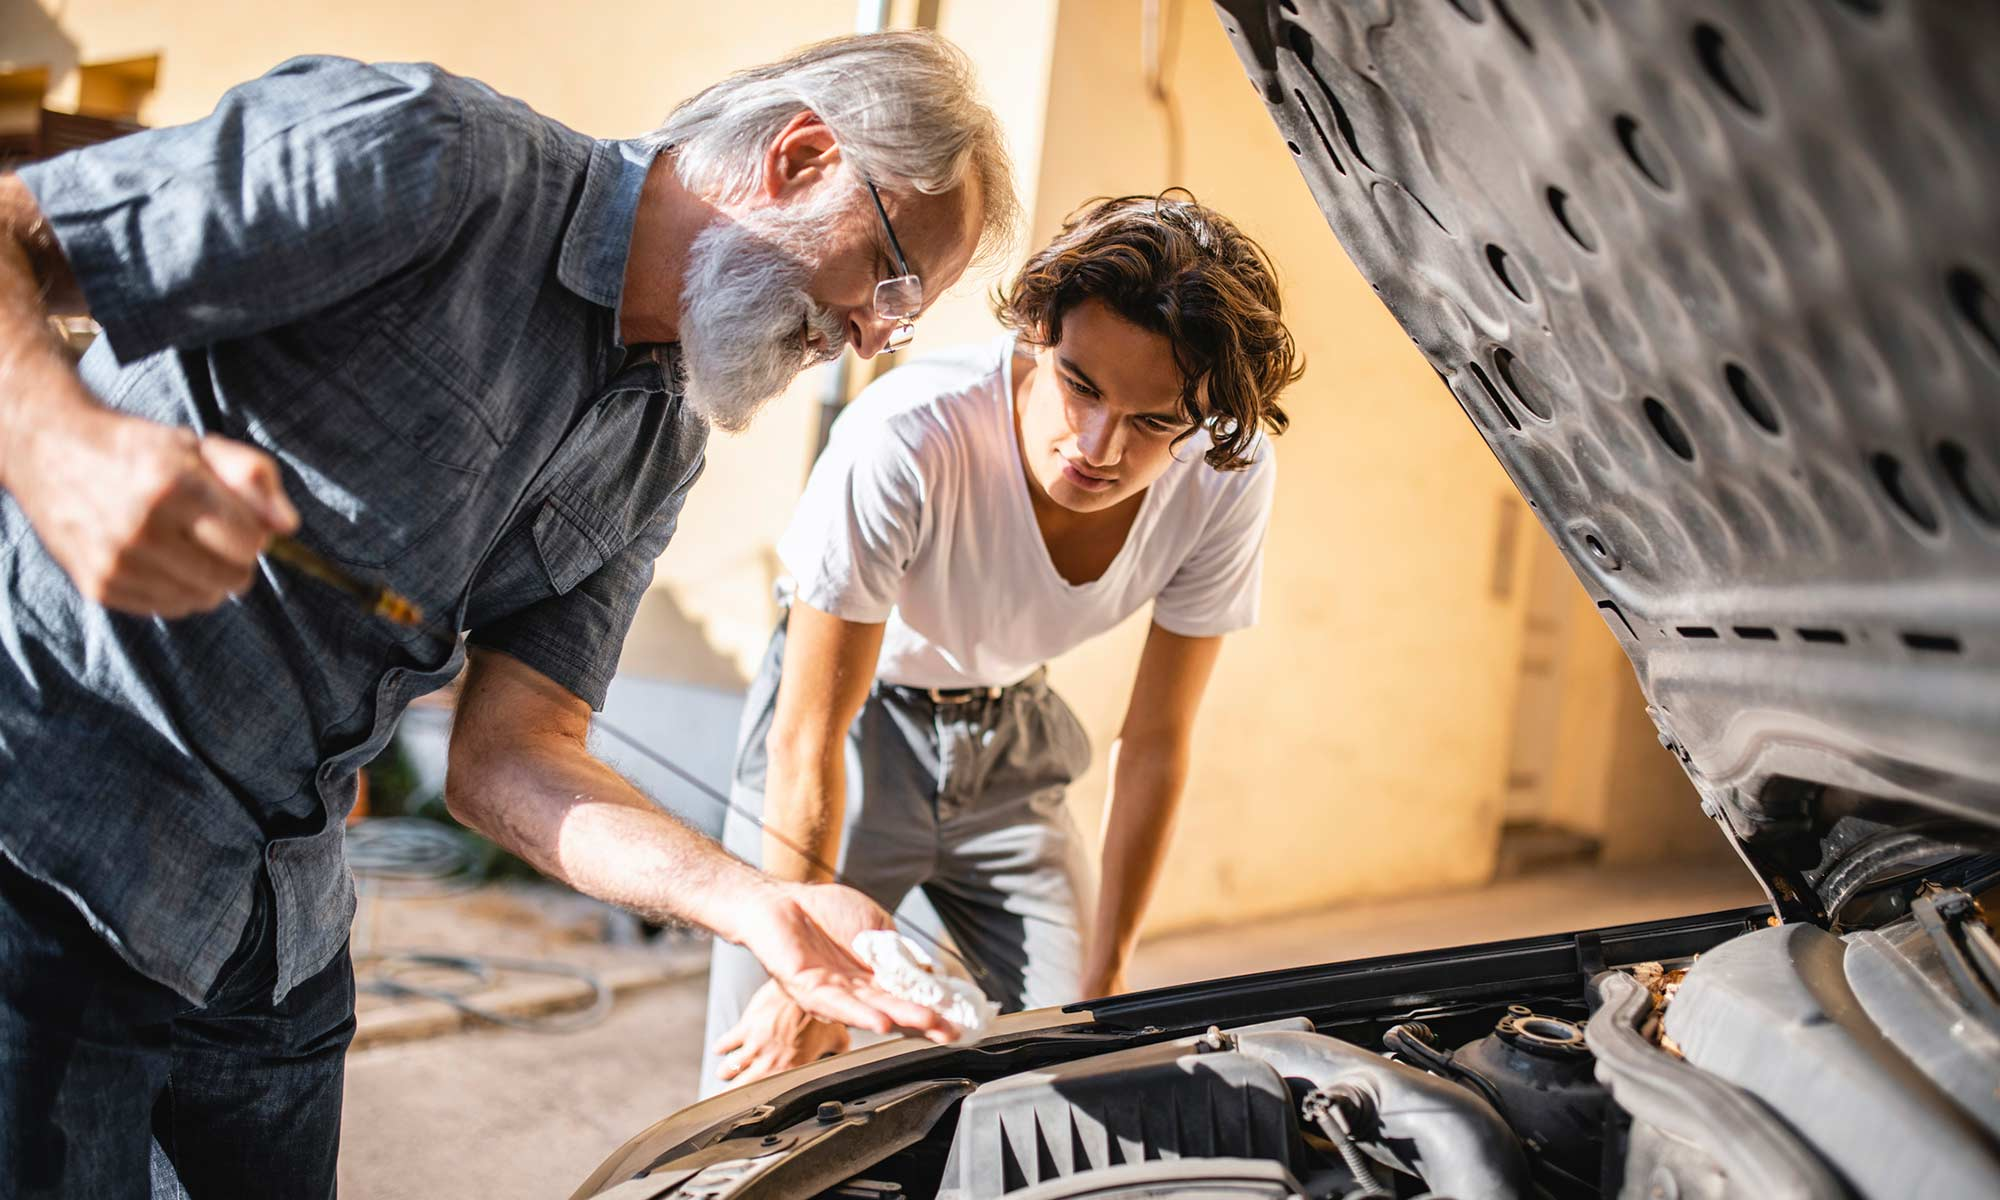 A grandfather and grandson working on a vehicle at home.